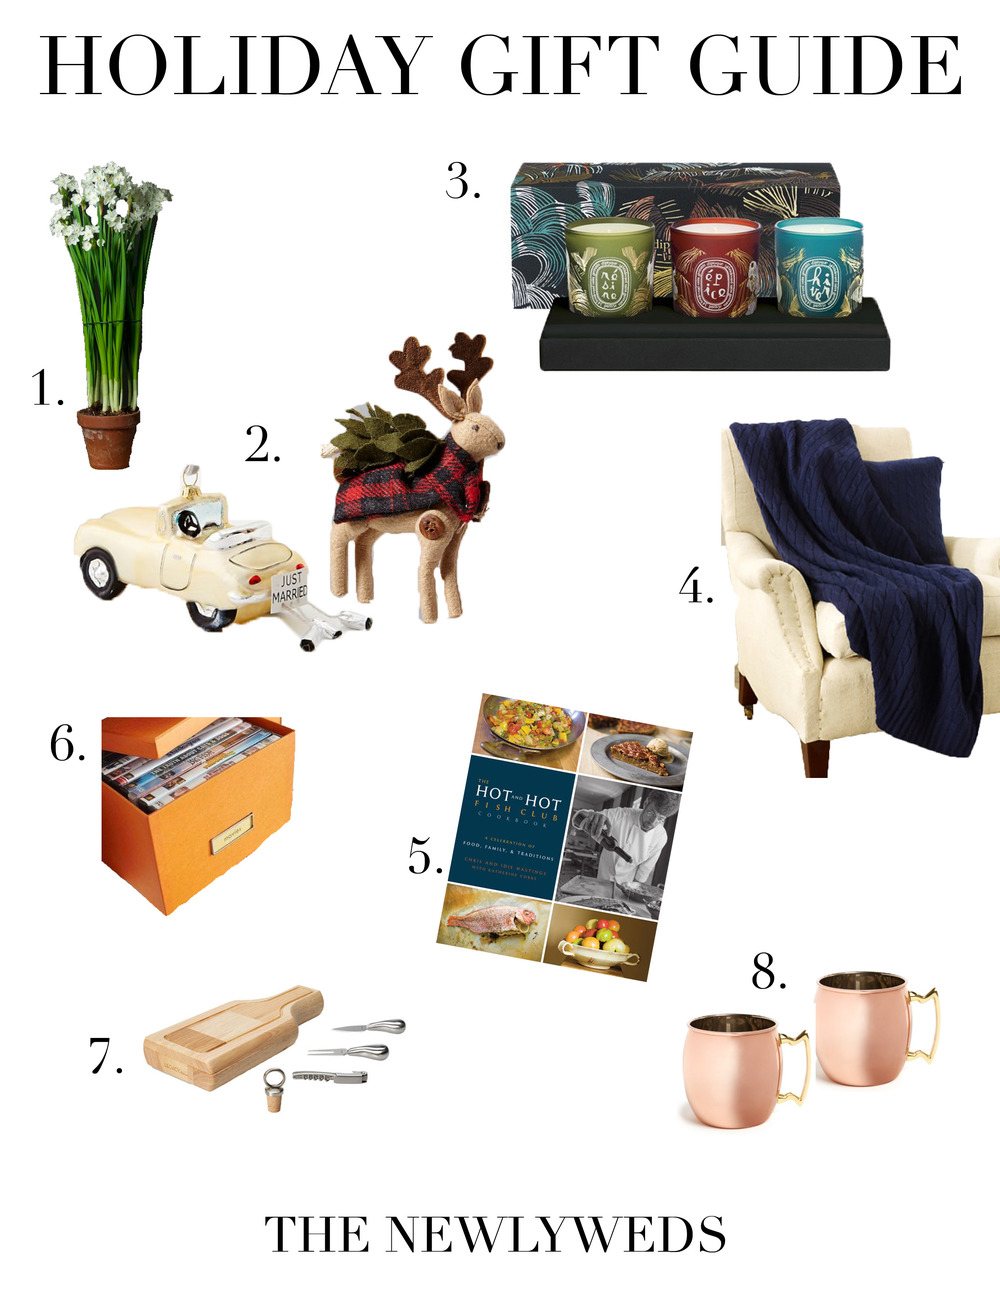 Handley breaux designs _ holiday gift guide _ birmingham wedding planner